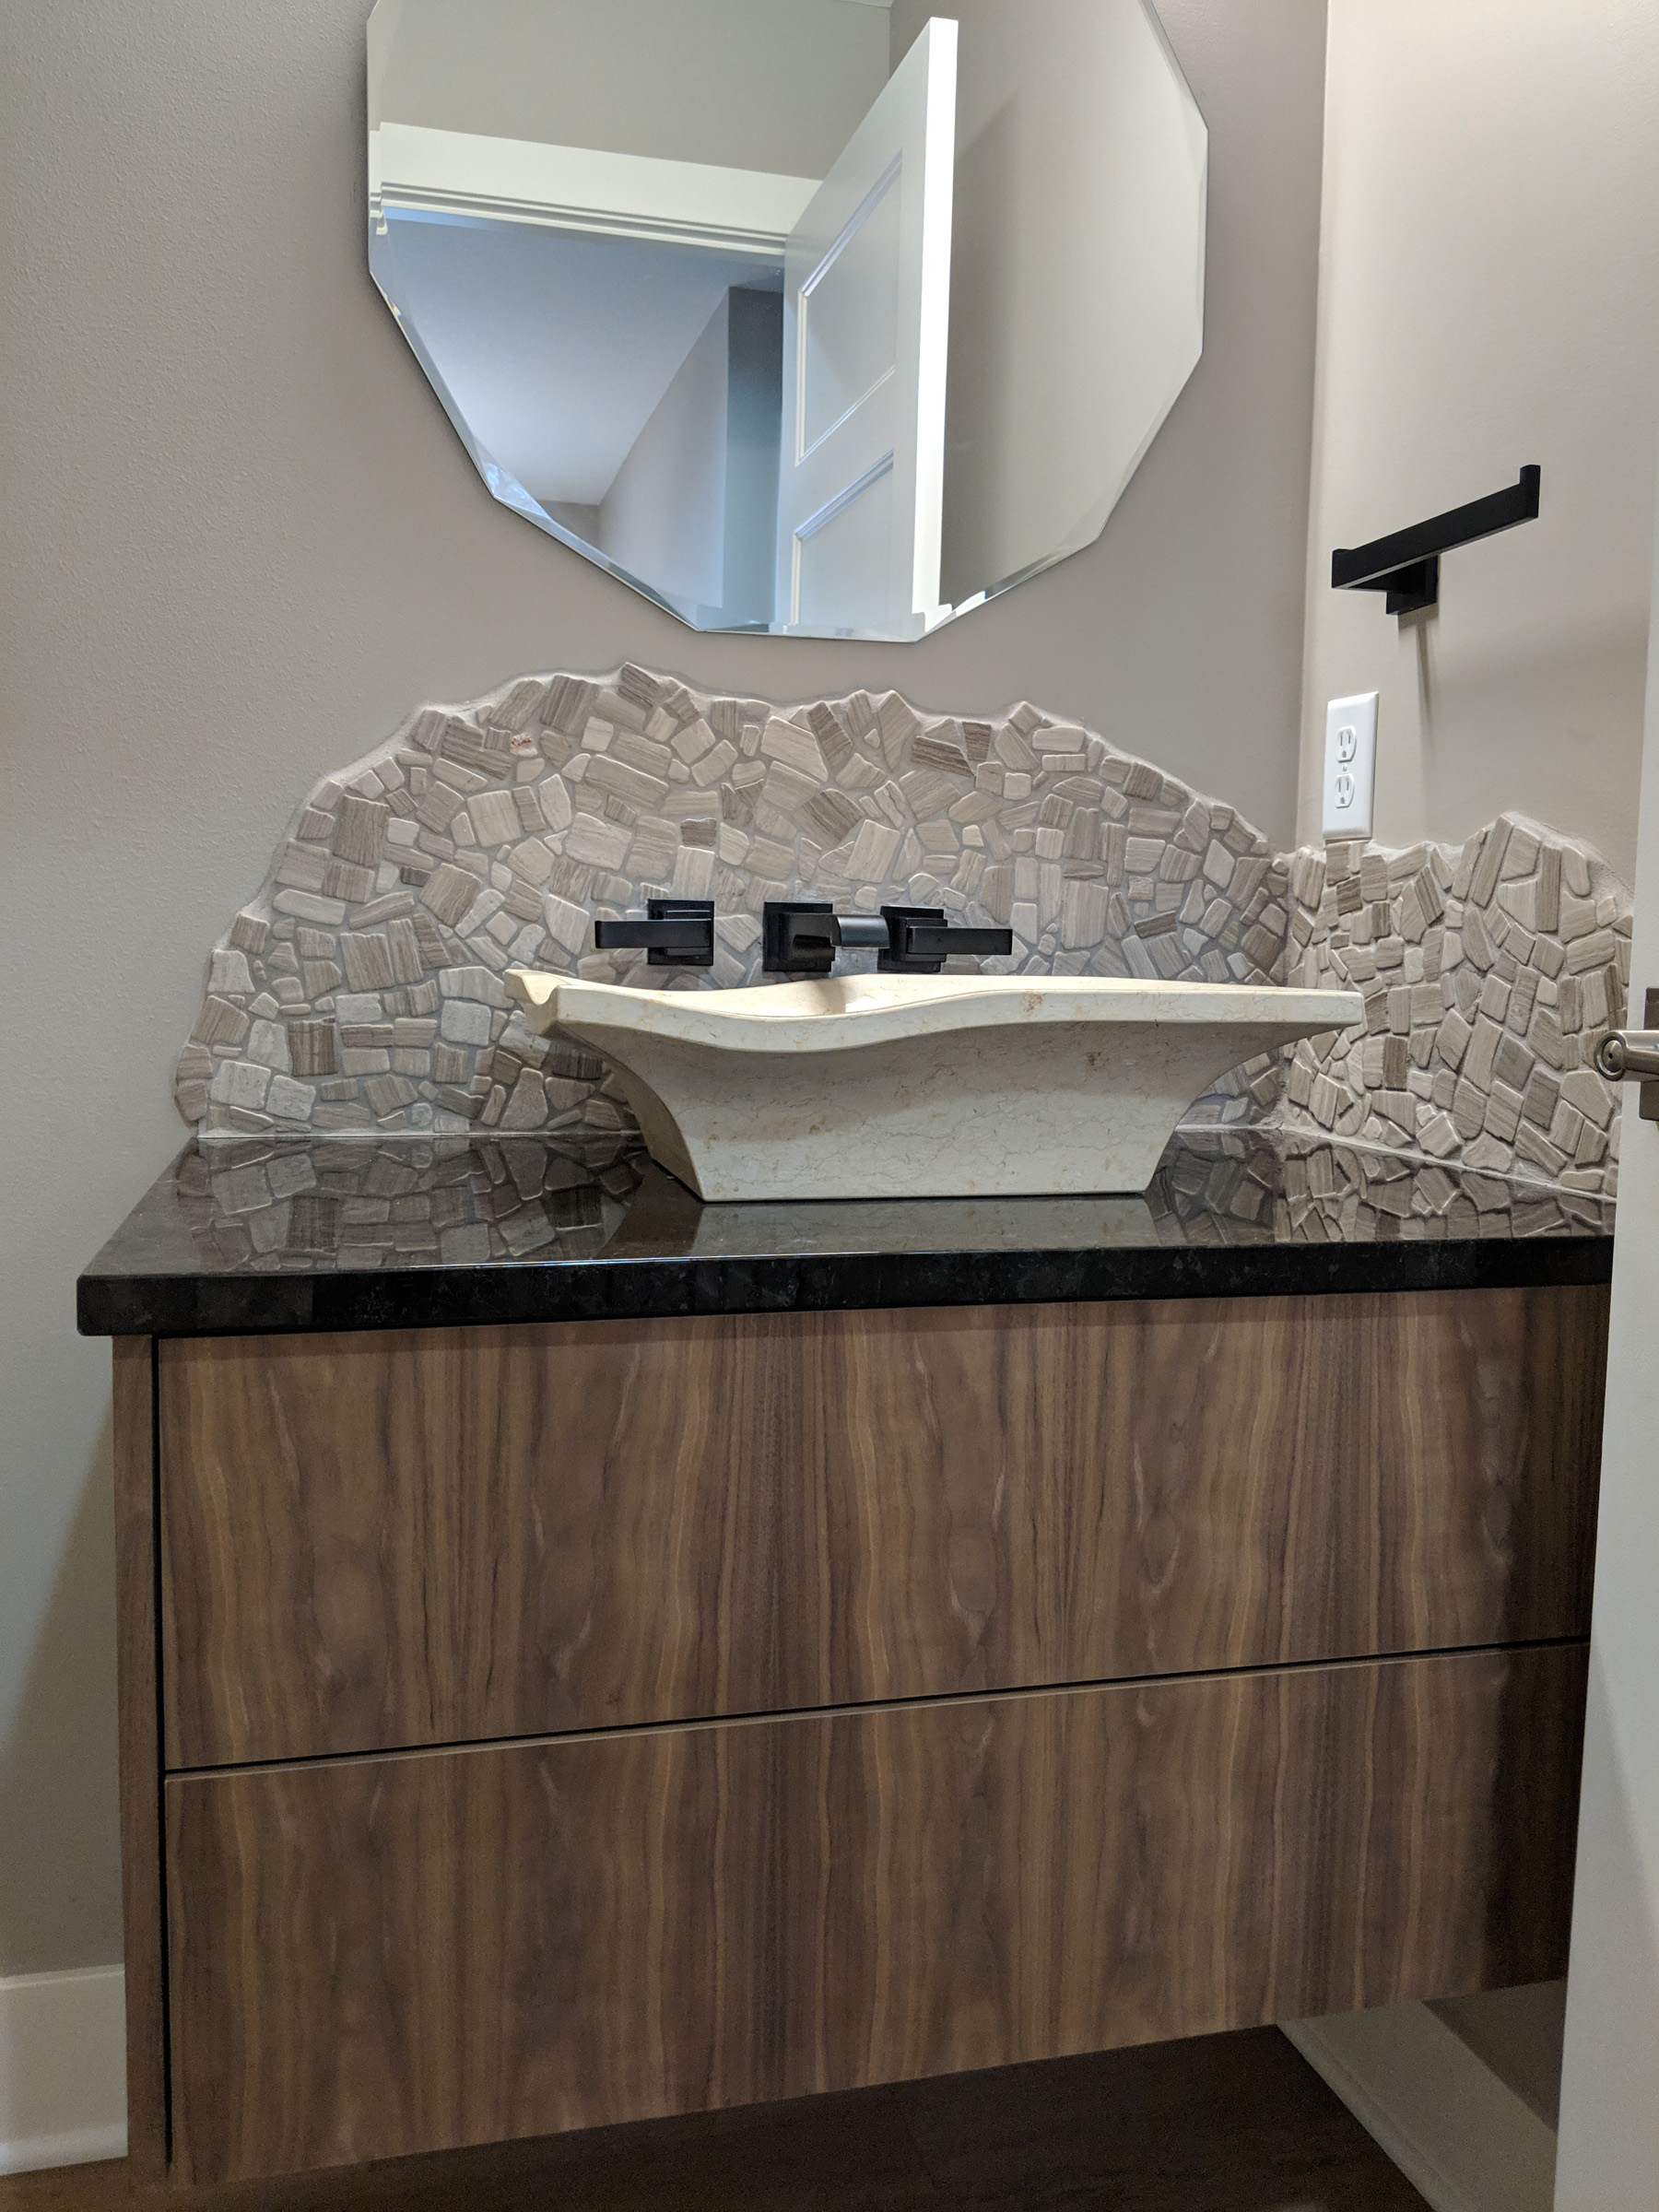 Top mount vessel sink with stone backsplash